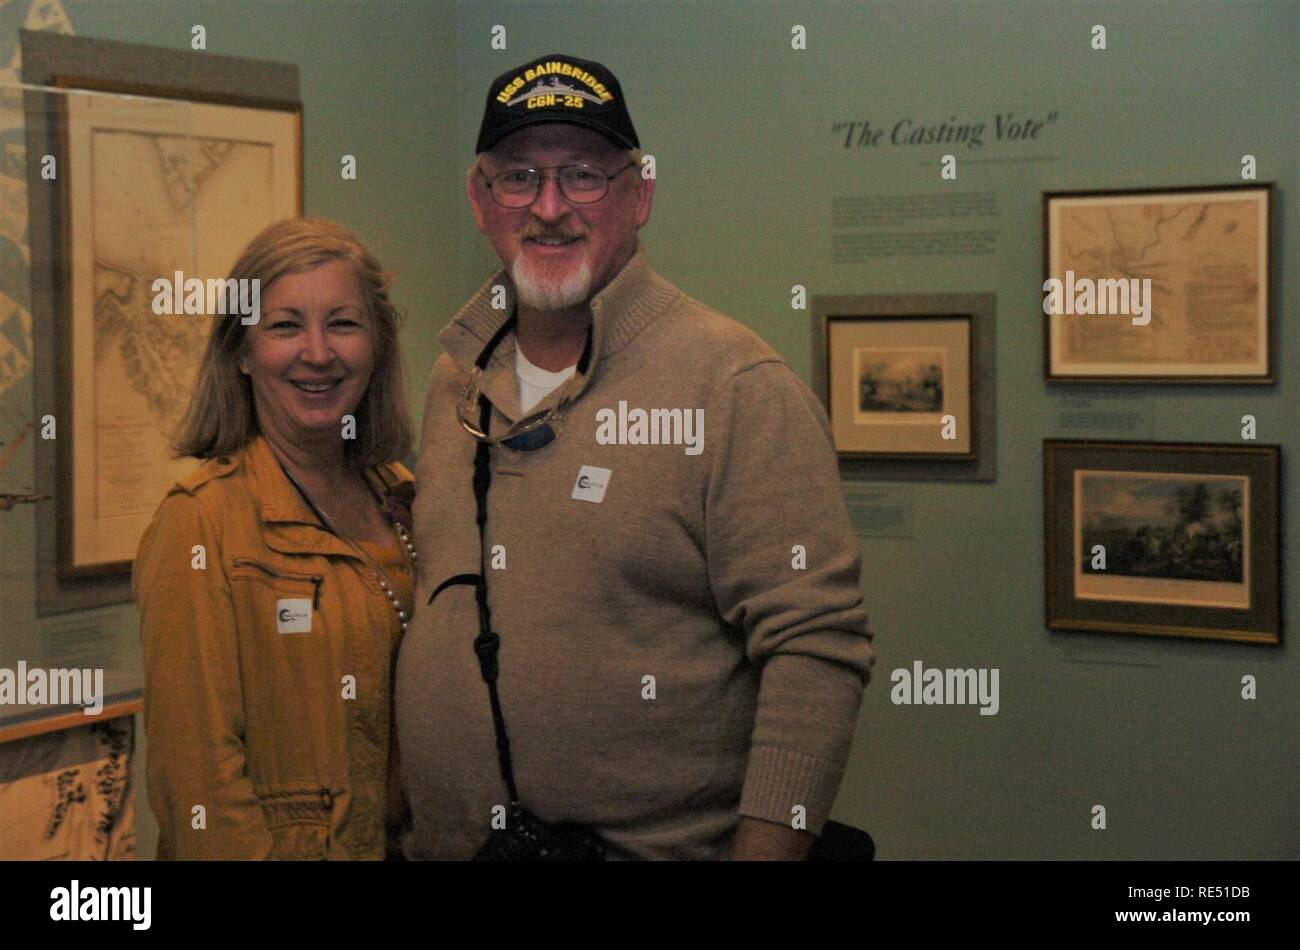 The first visitors to the Hampton Roads Naval Museum visited the gallery at around 11:10am on Tuesday, January 1, 2019. - Stock Image